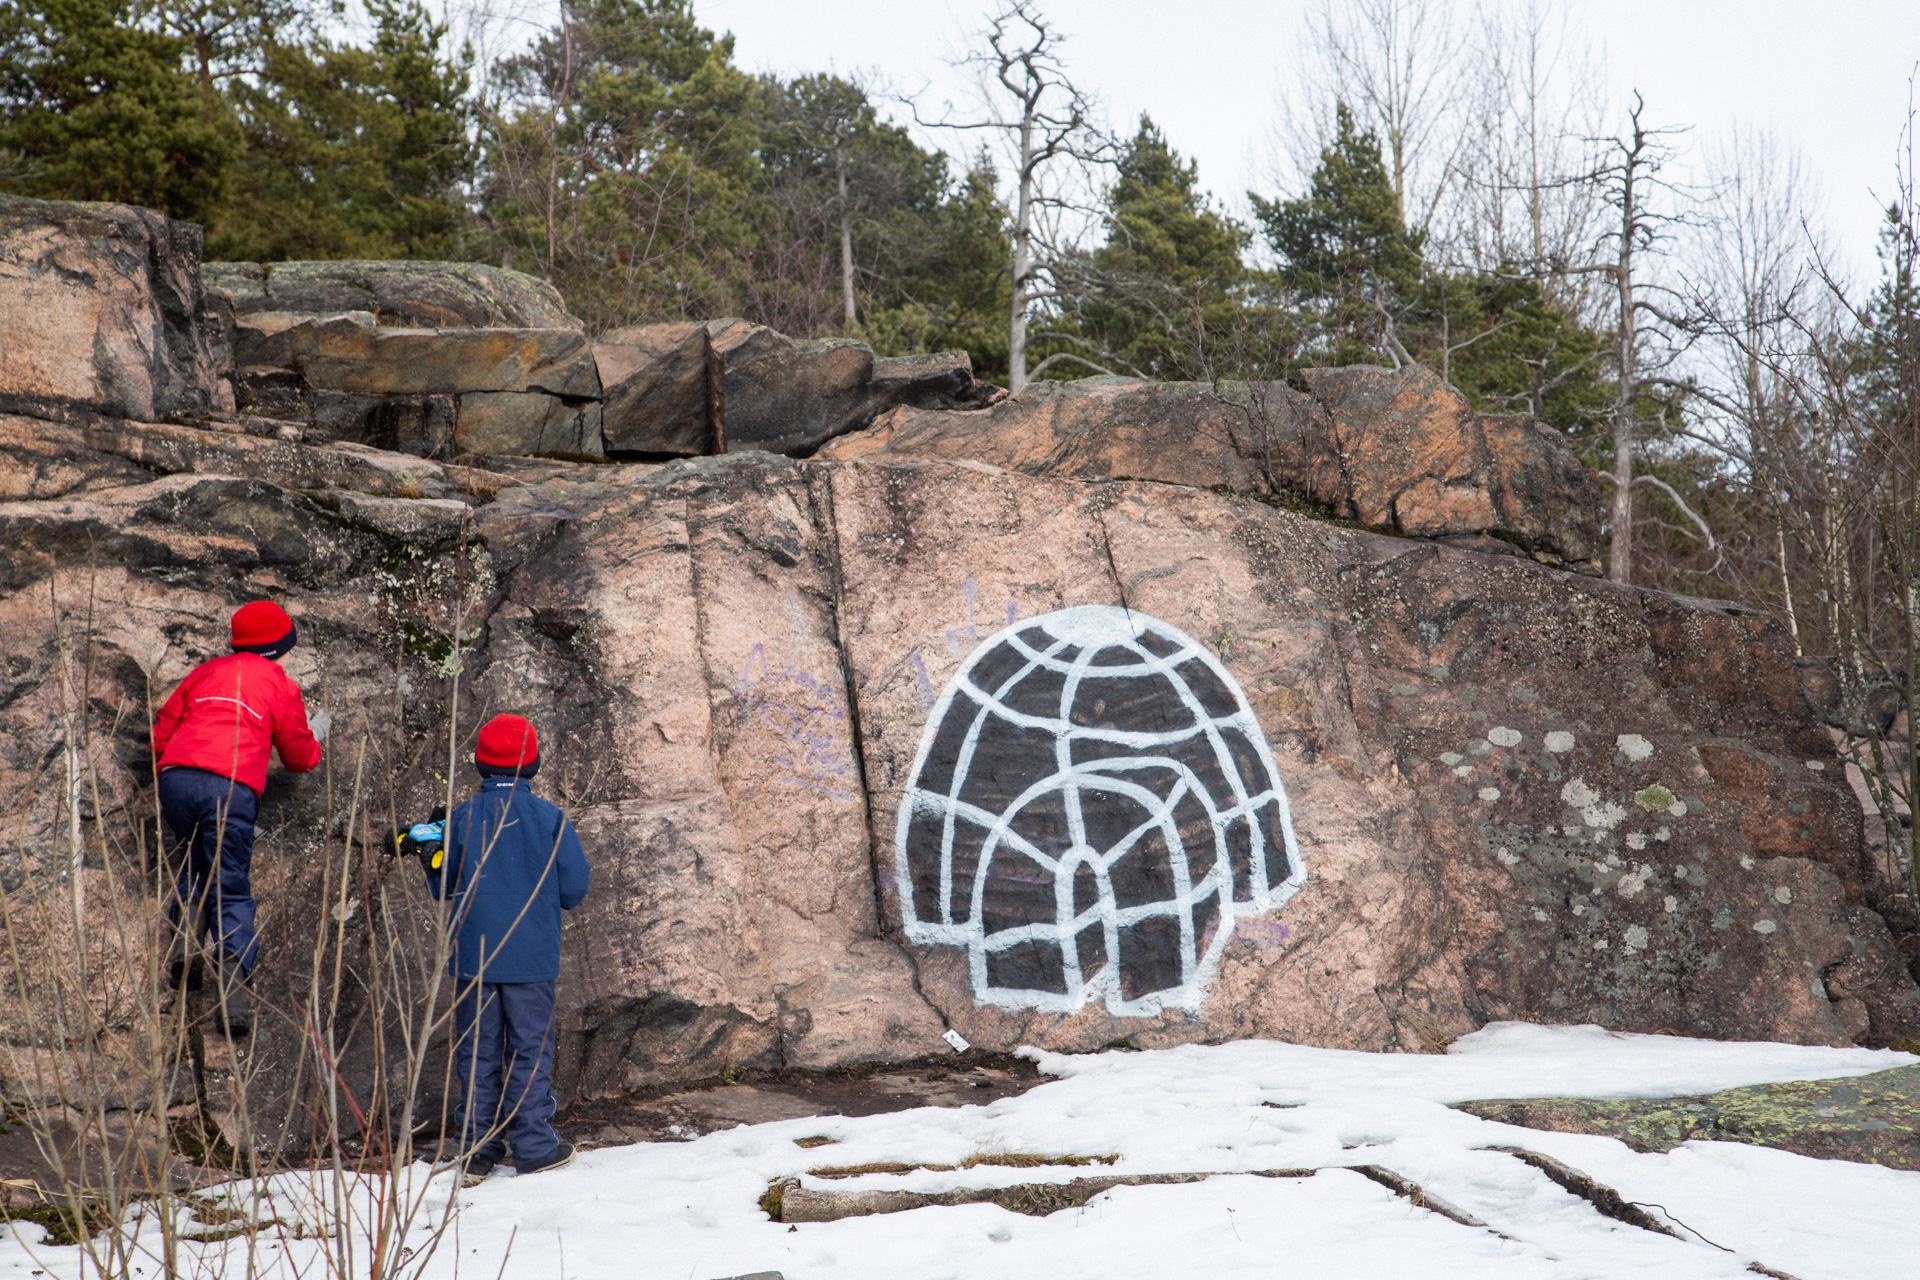 Children by the rock with a graffiti depicting an iglu.